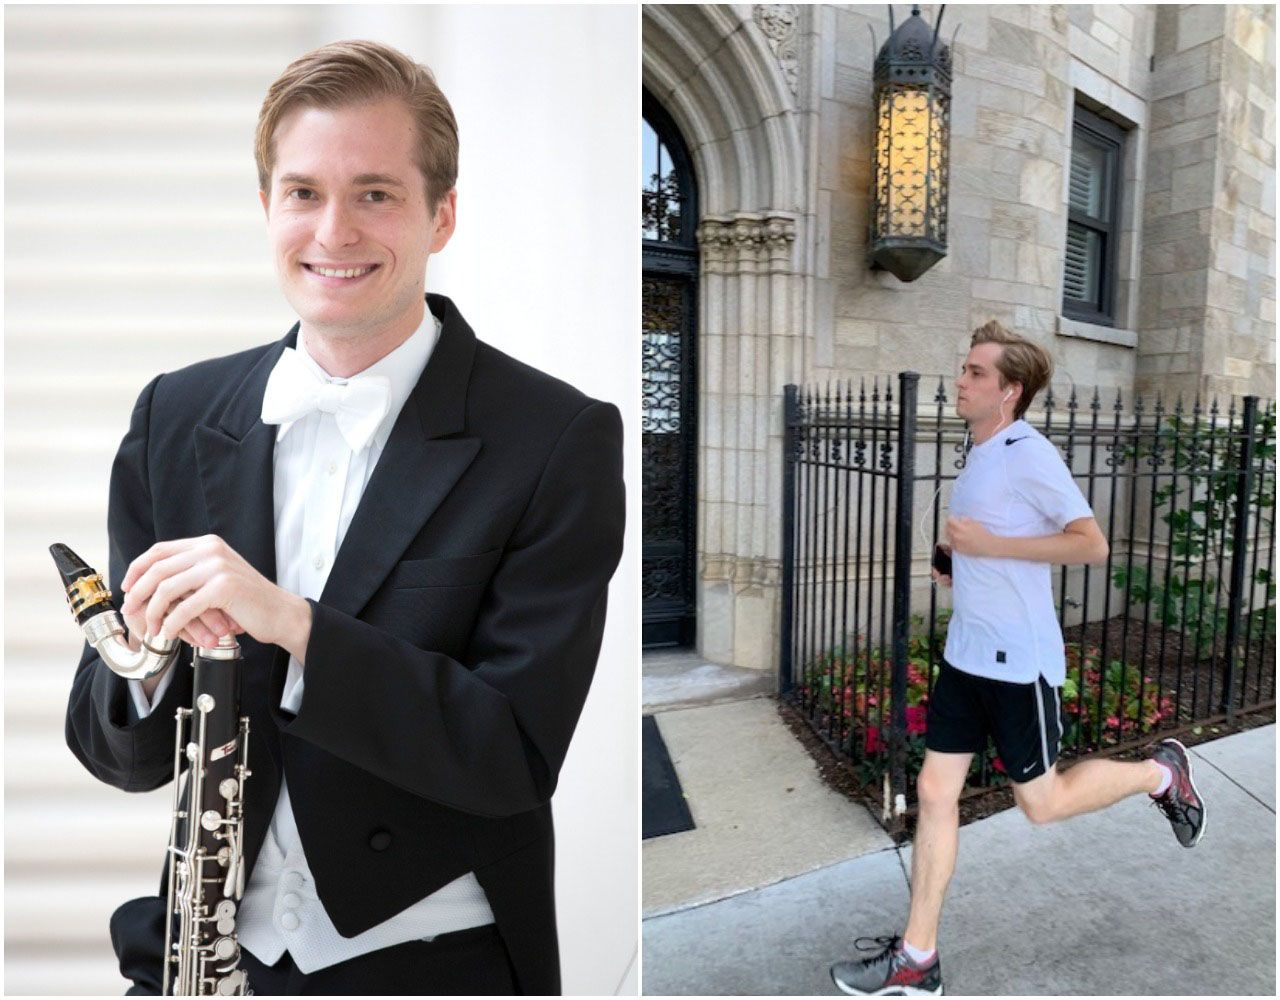 Andrew Sandwick, who won a postion in the clarinet section of the Dallas Symphony Orchestra, follows a strict schedule leading up to each audition.